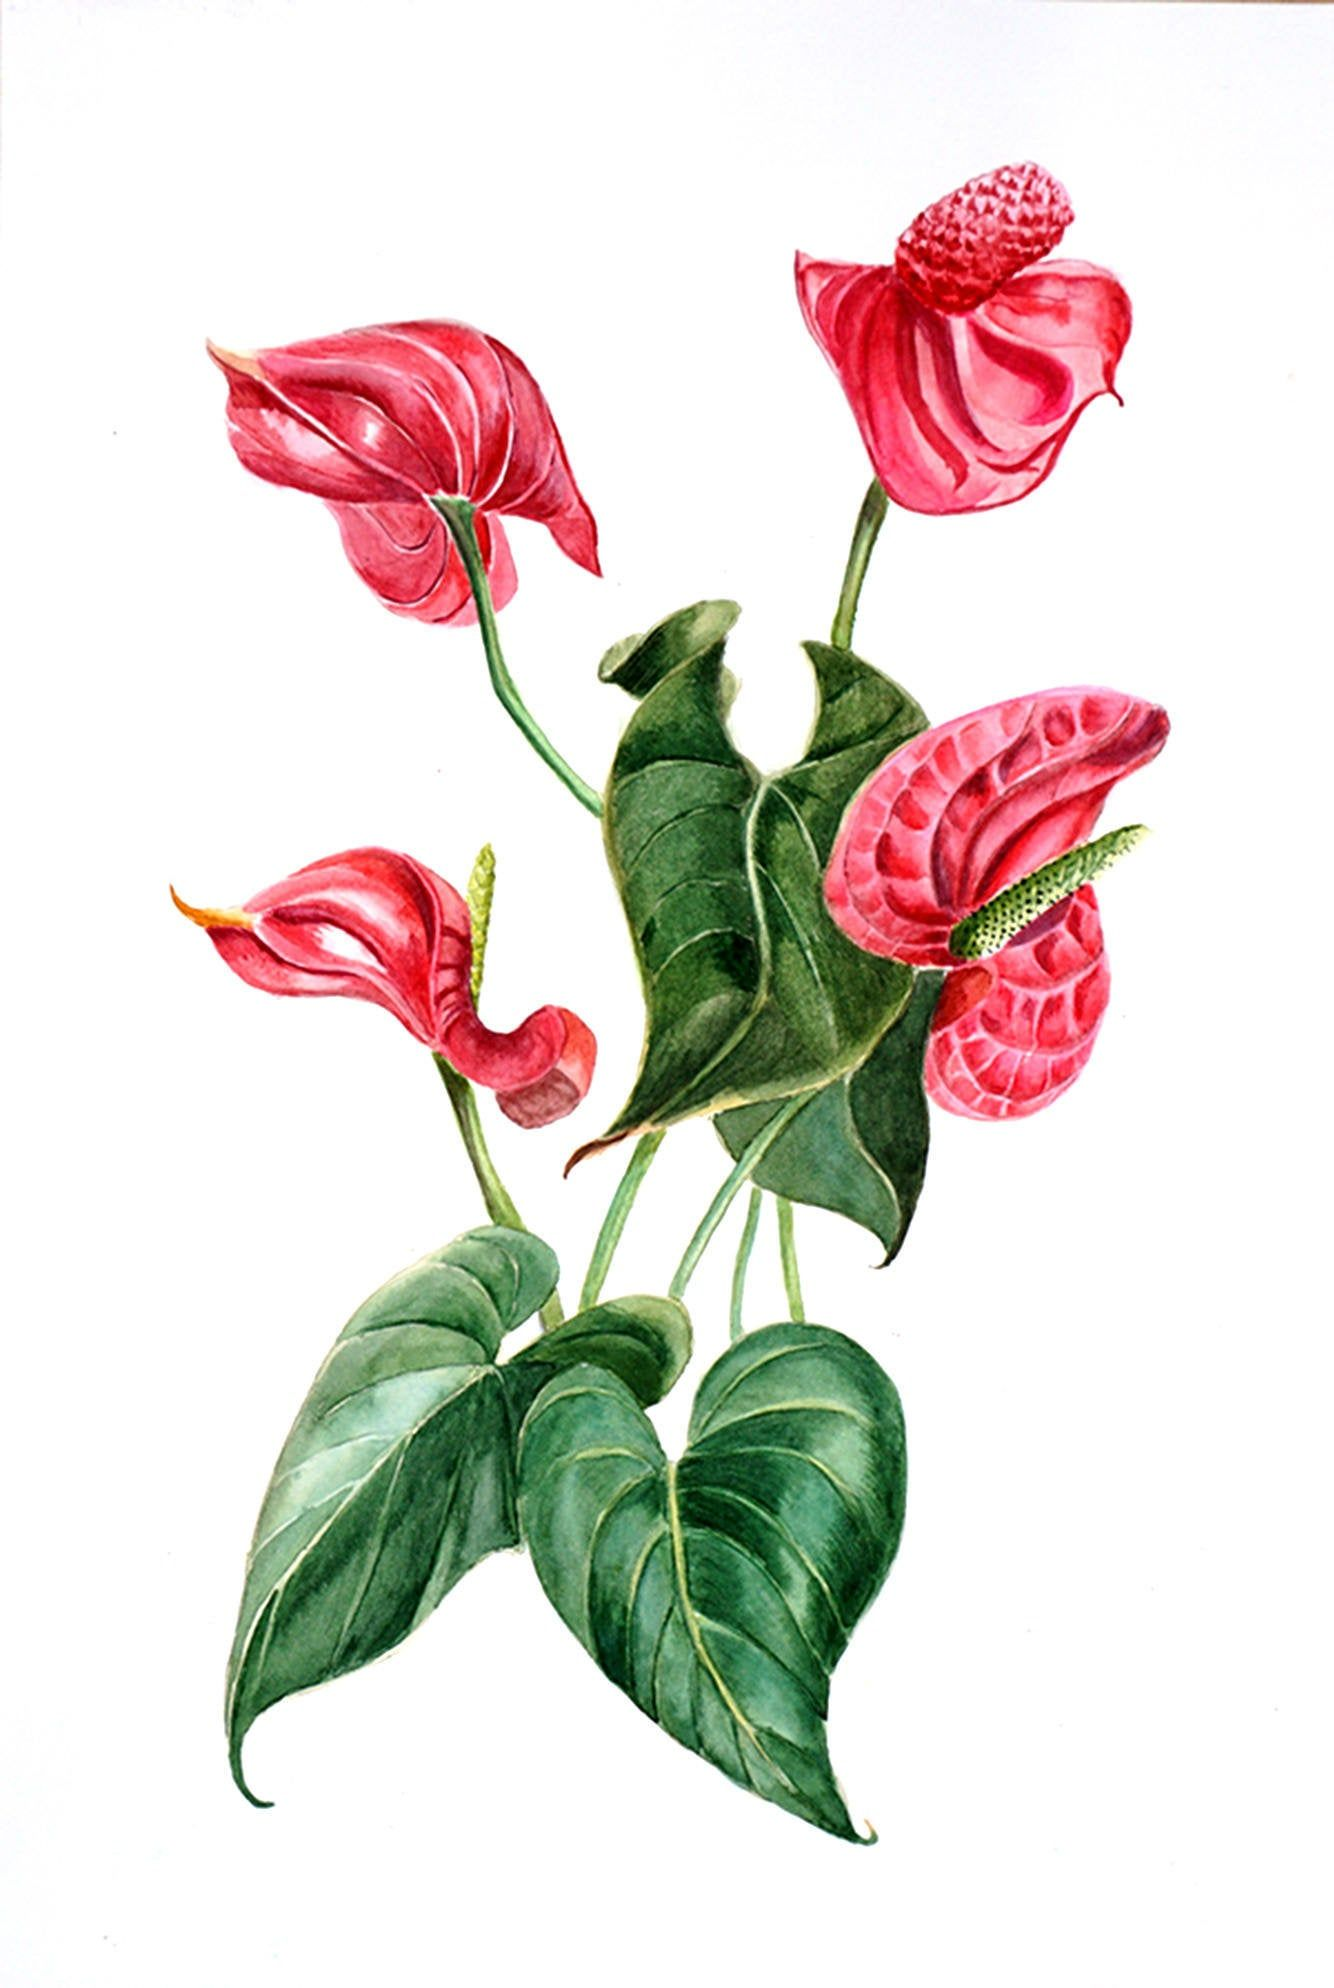 Red Flower Painting Original Watercolor Anthurium Floral Etsy In 2020 Flower Painting Original Flower Painting Botanical Wall Art